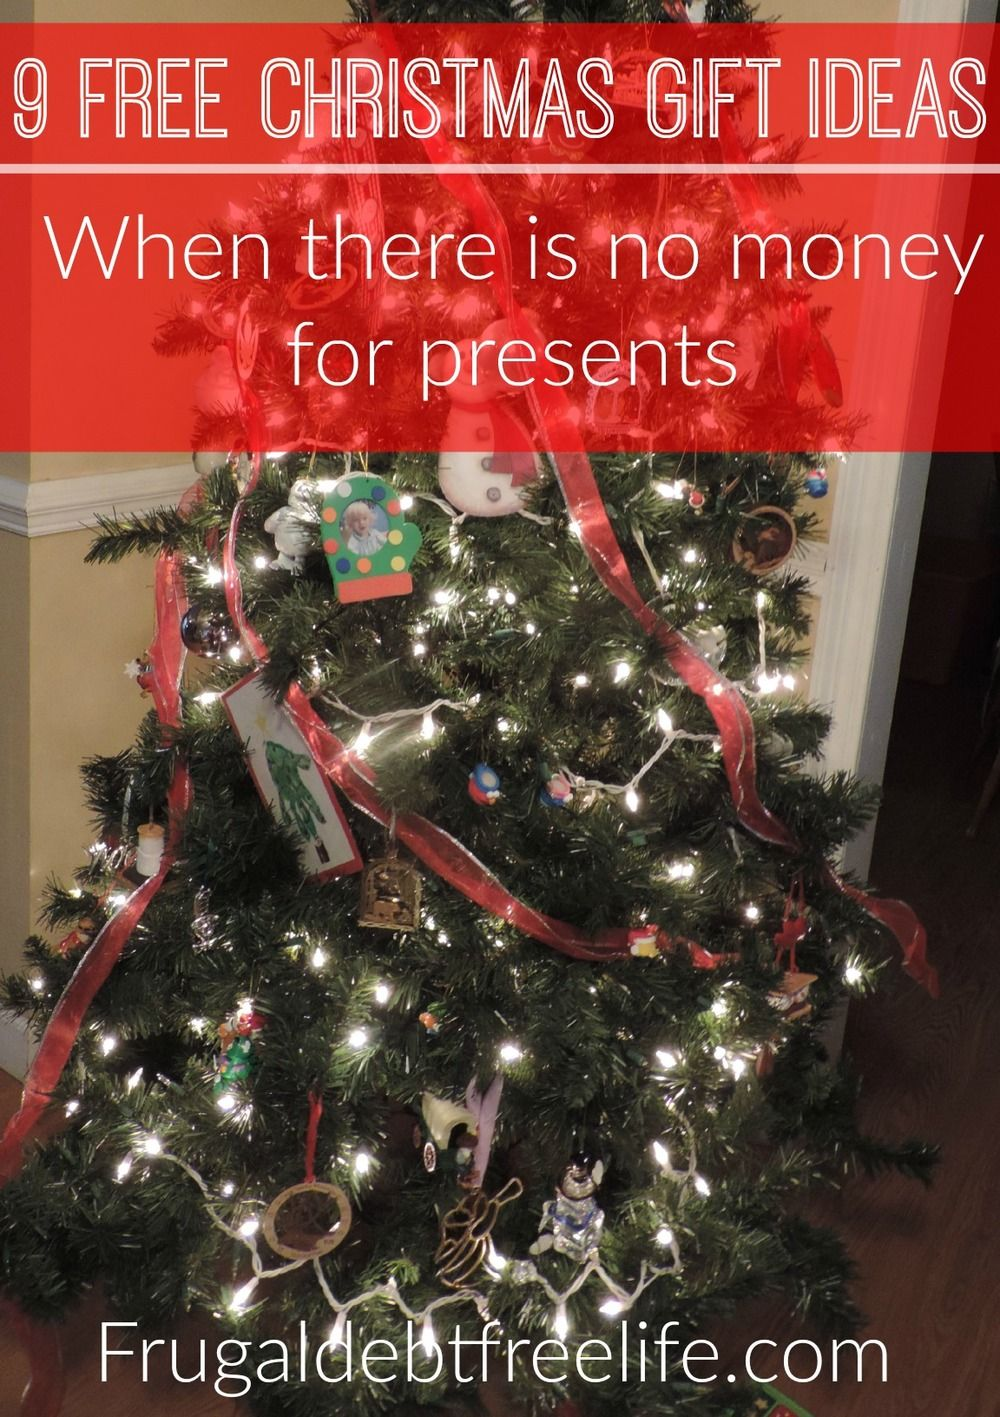 9 Christmas Gifts Ideas That Cost 0 Frugal Debt Free Life Free Christmas Gifts Christmas Gifts Diy Christmas Gifts